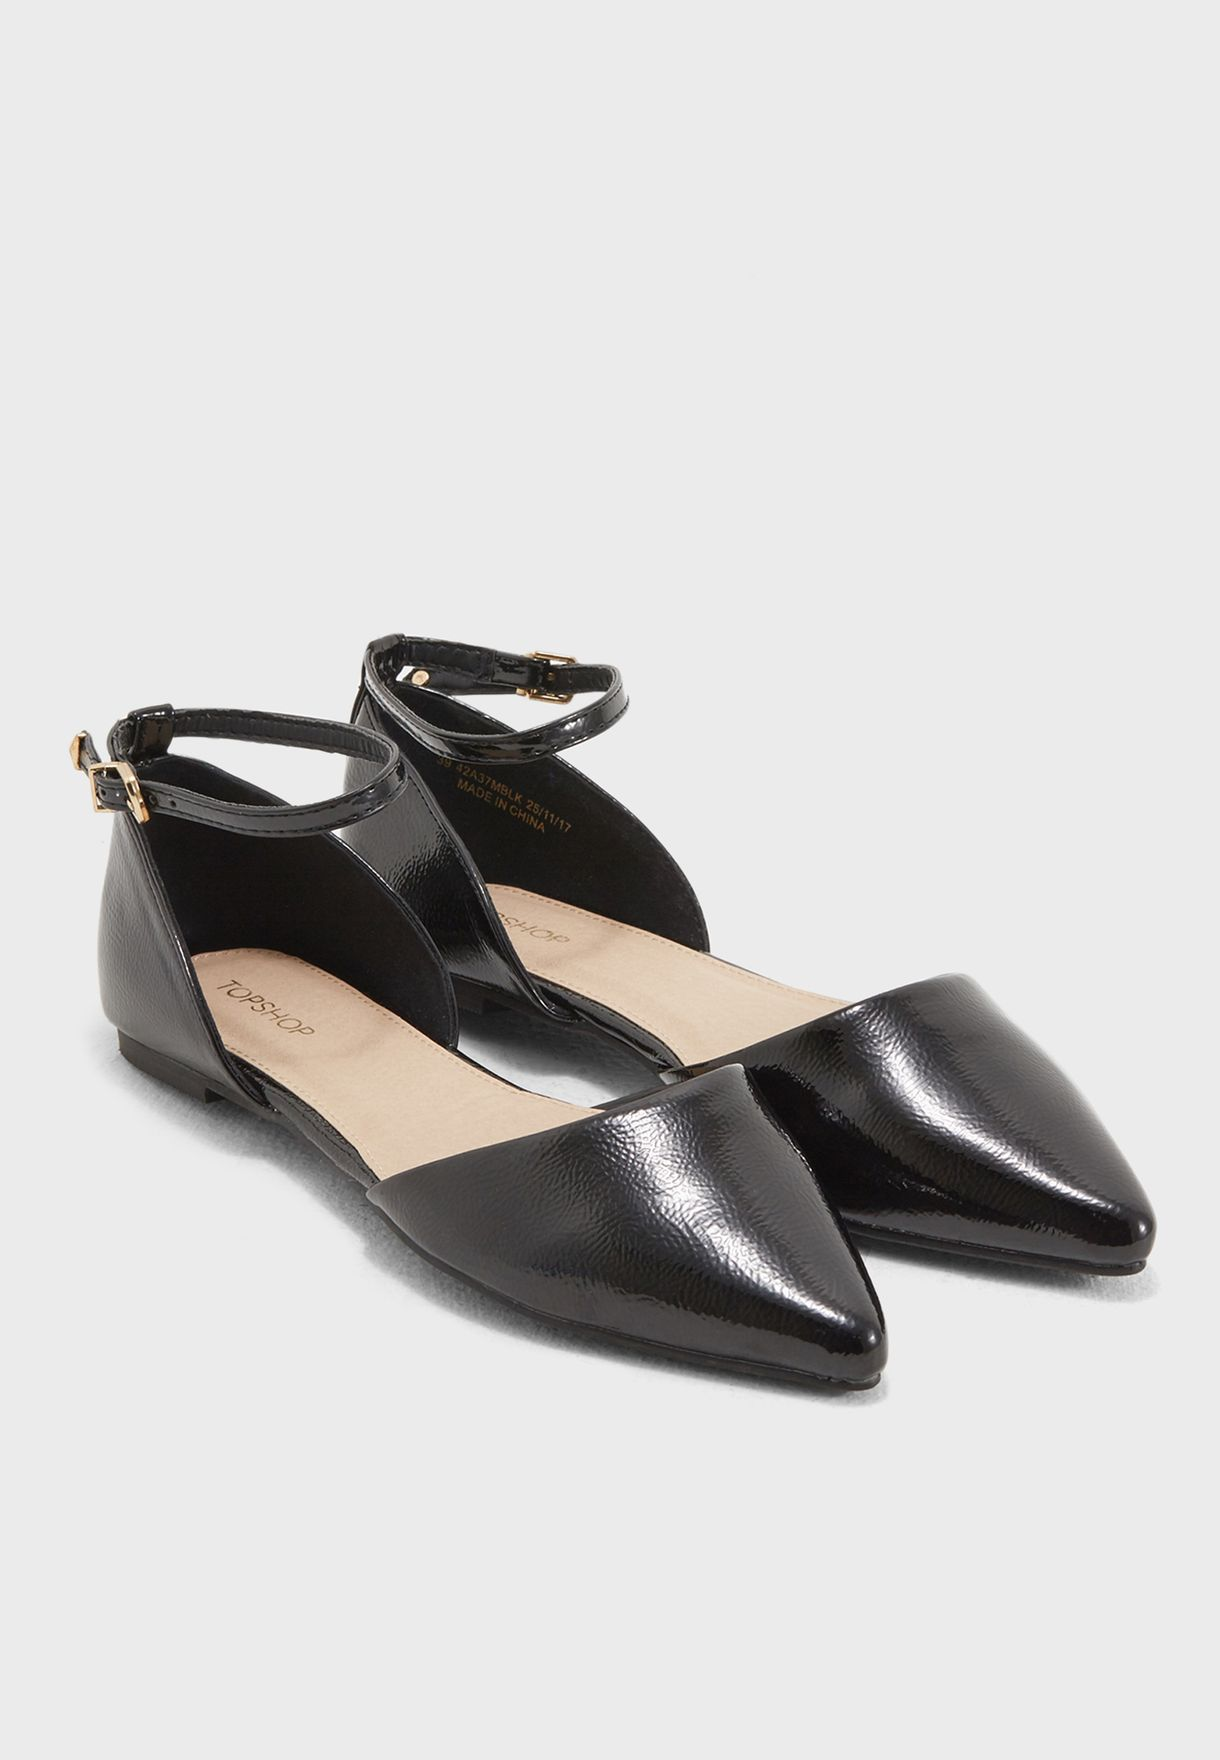 c3c7f9f169c Shop Topshop black Annie Pointed Shoes 42A37MBLK for Women in UAE ...